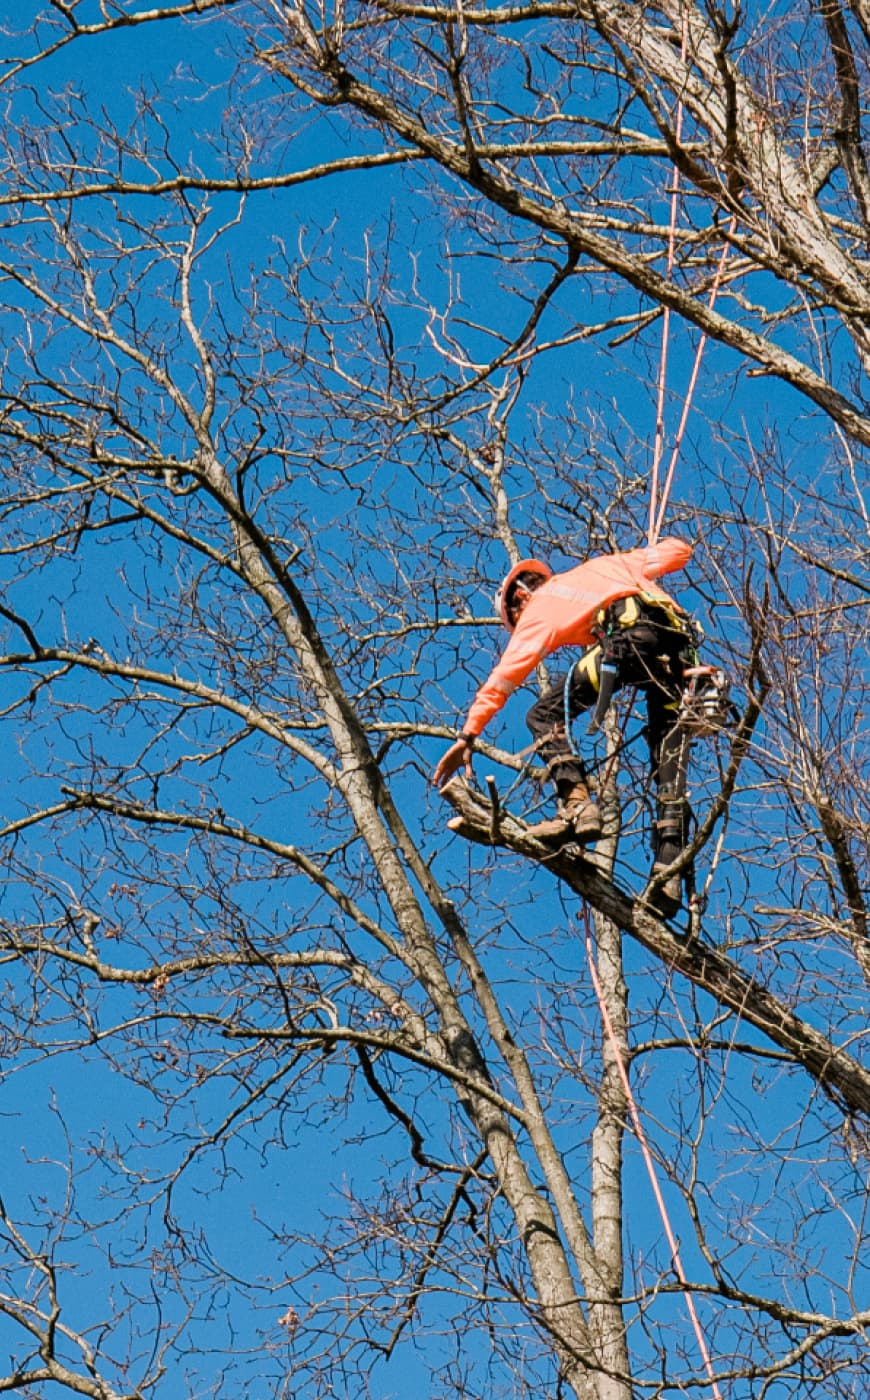 tree service company with good safety record